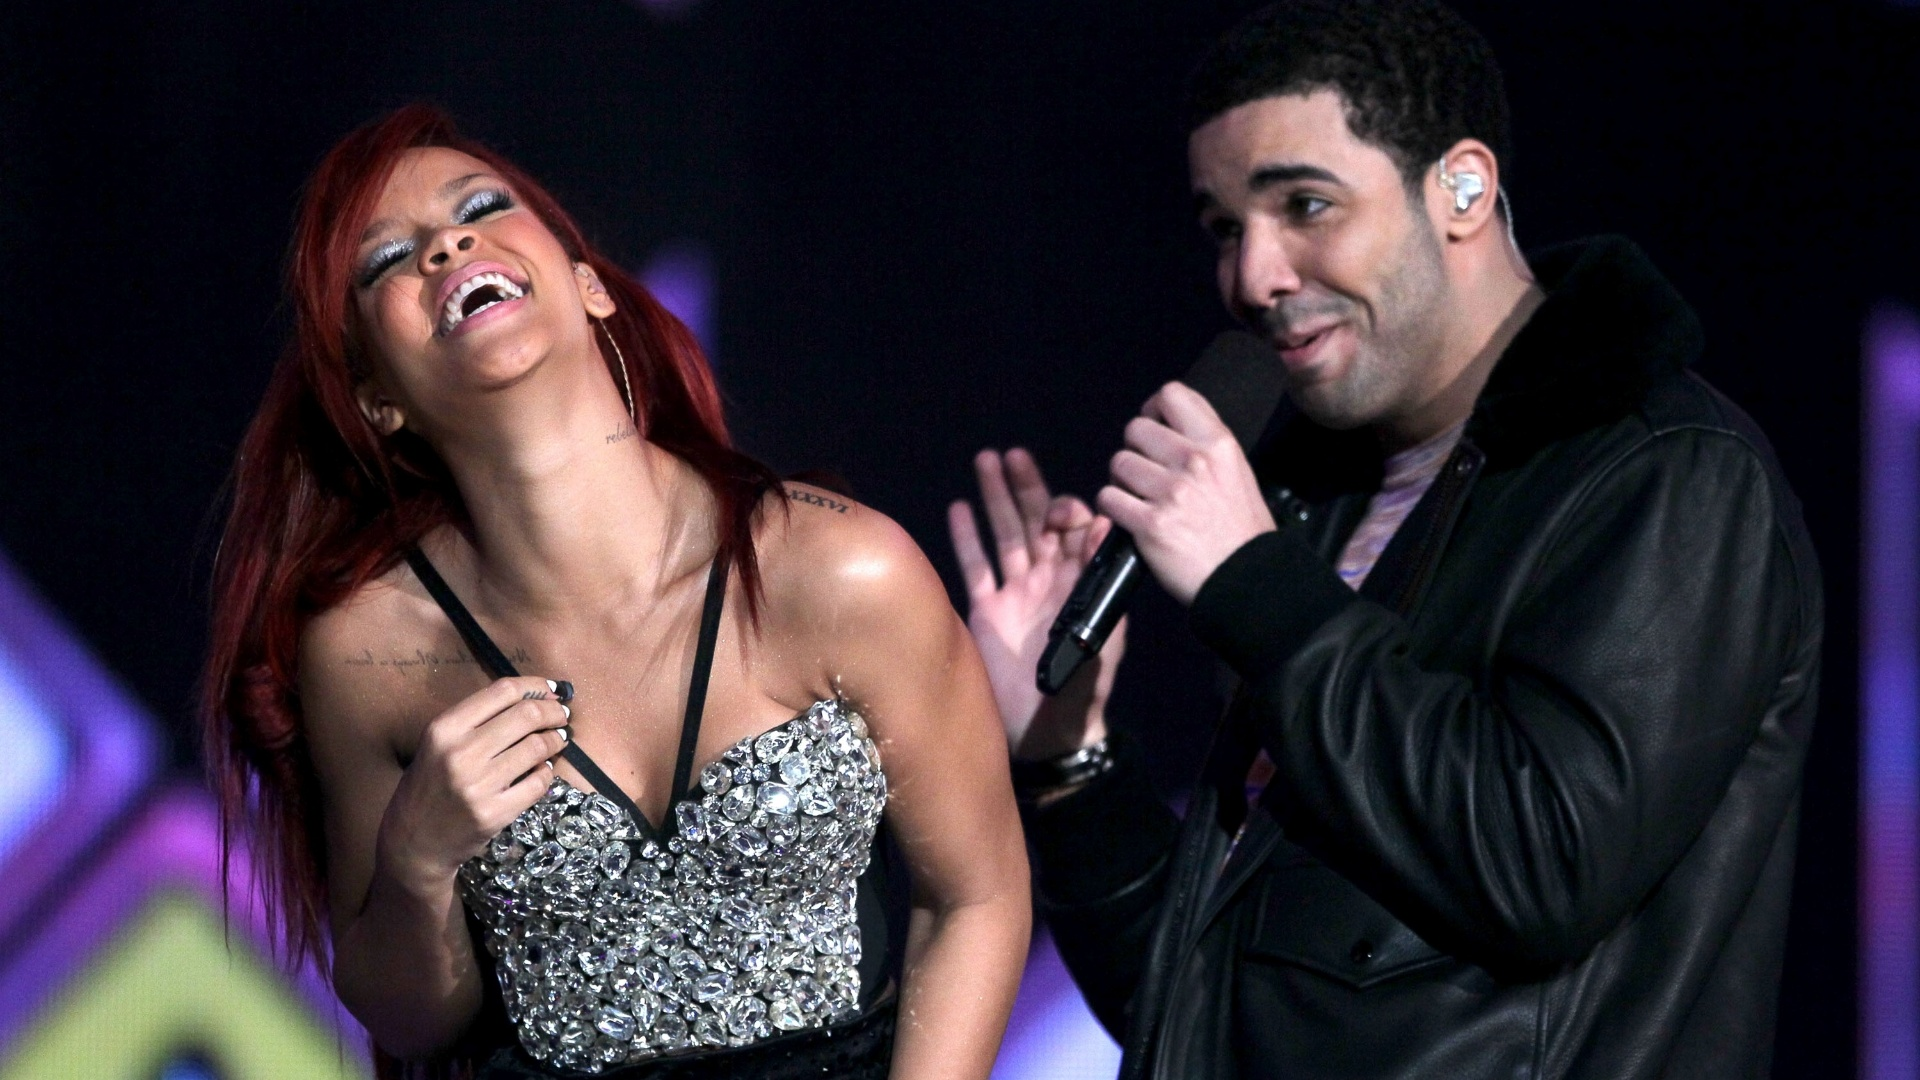 Rihanna e Drake se apresentam no intervalo do NBA All-Star Game em Los Angeles (20/2/11)